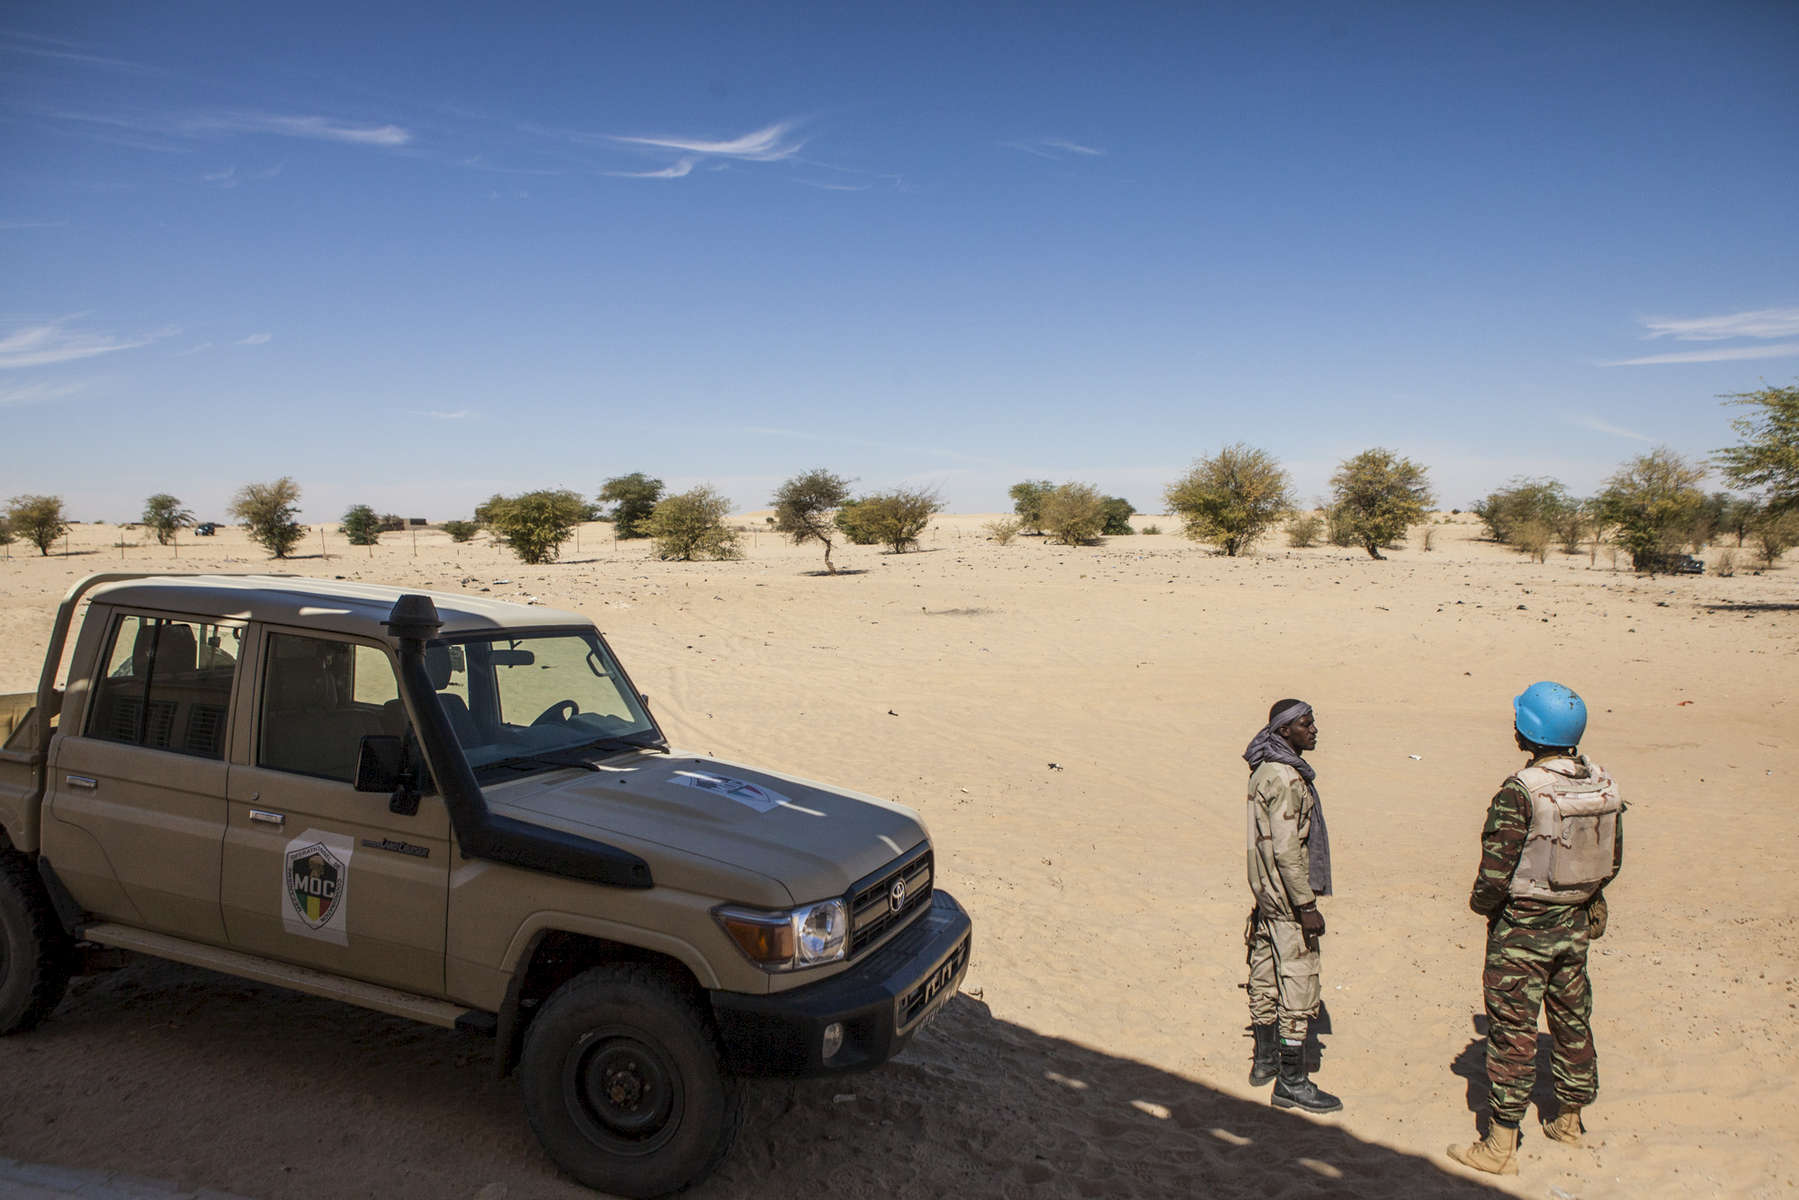 A United Nations peacekeeper speaks with a member of the MOC (Mécanisme Opérationnel de Coordination), a force comprised of members of the Malian Army as well as members of former armed rebel groups who are part of the peace process, on the outskirts of Timbuktu, Mali on Tuesday, January 10, 2017.